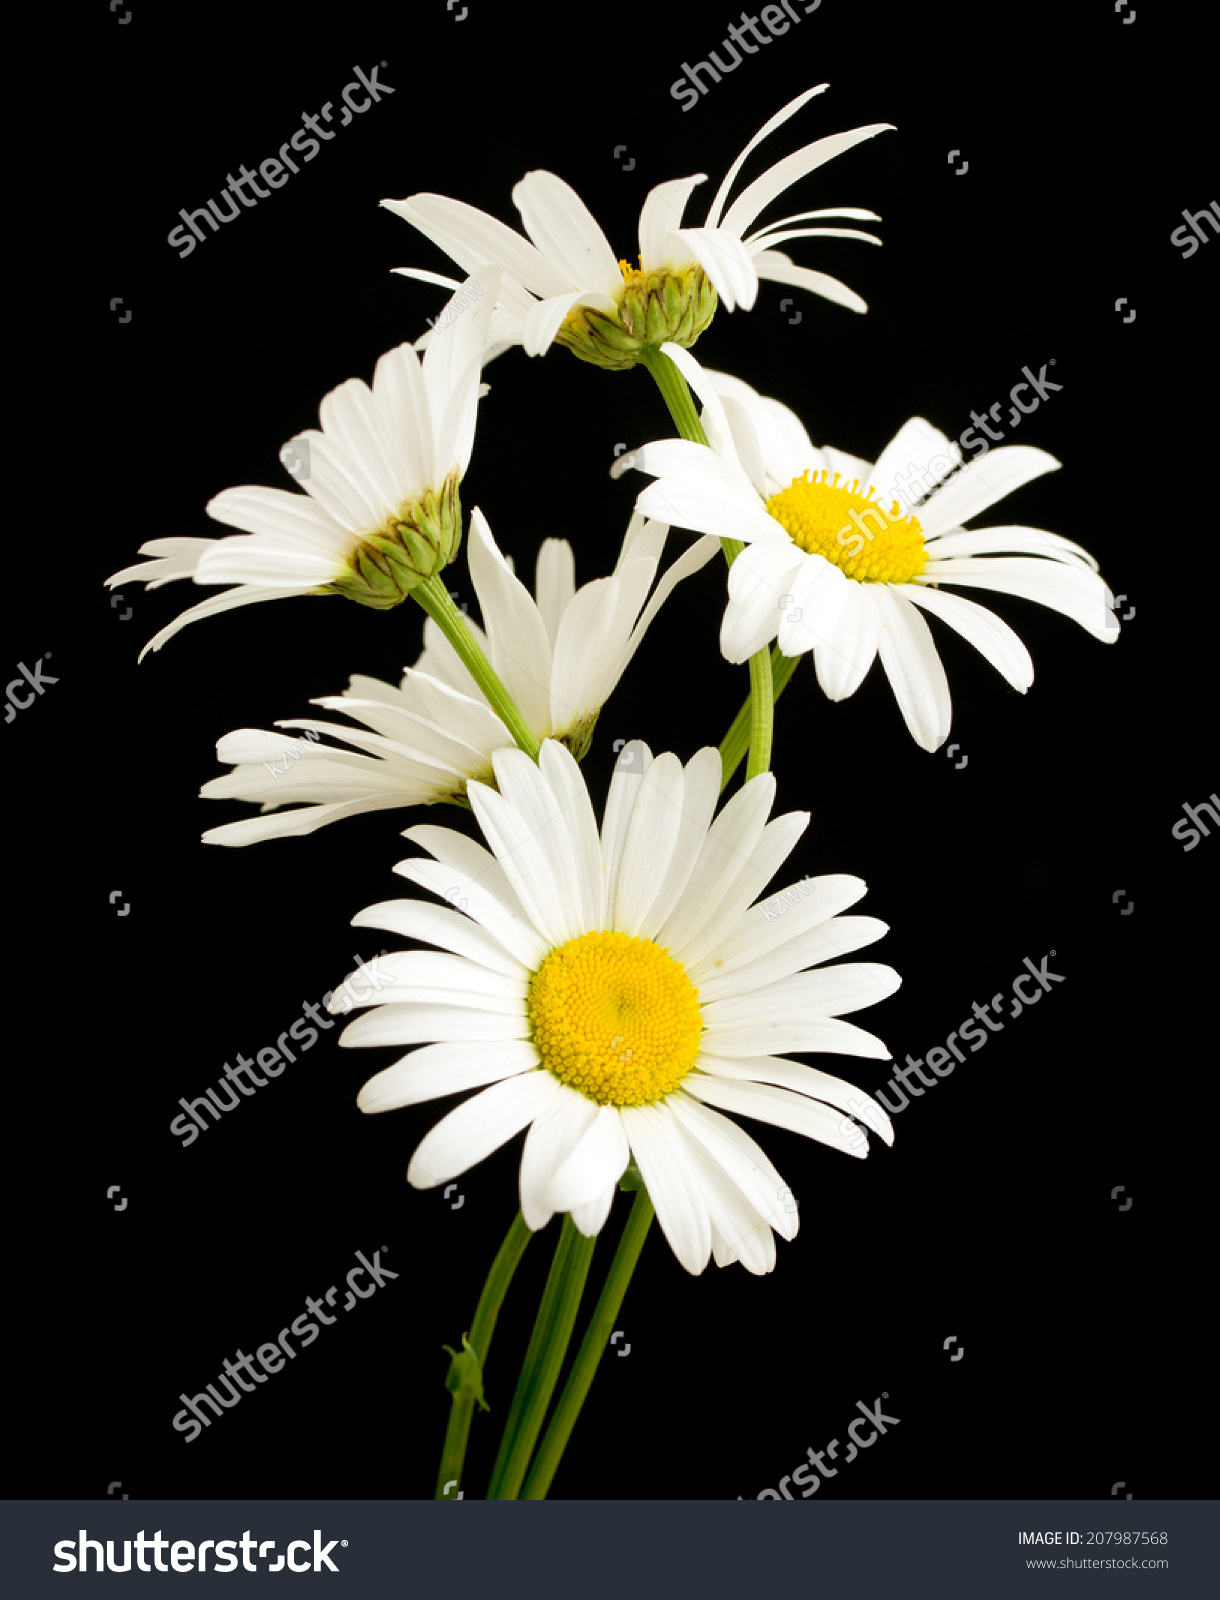 White Daisy Flower Against Black Background Imagen de ...